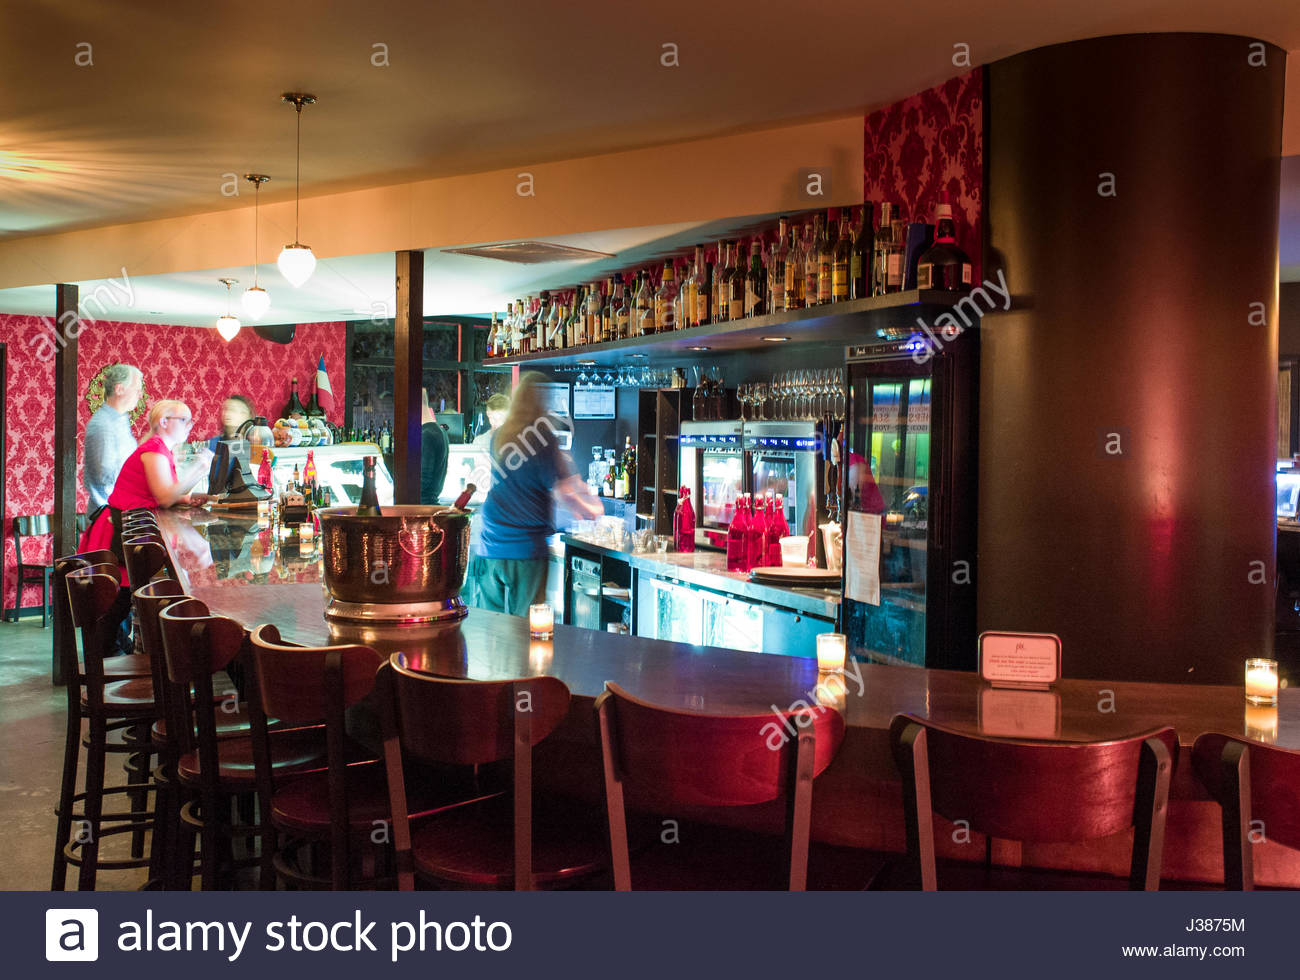 People enjoying food and drinks inside Pix Patisserie, 2225 E Burnside Street, Portland, Multnomah County, Oregon, - Stock Image